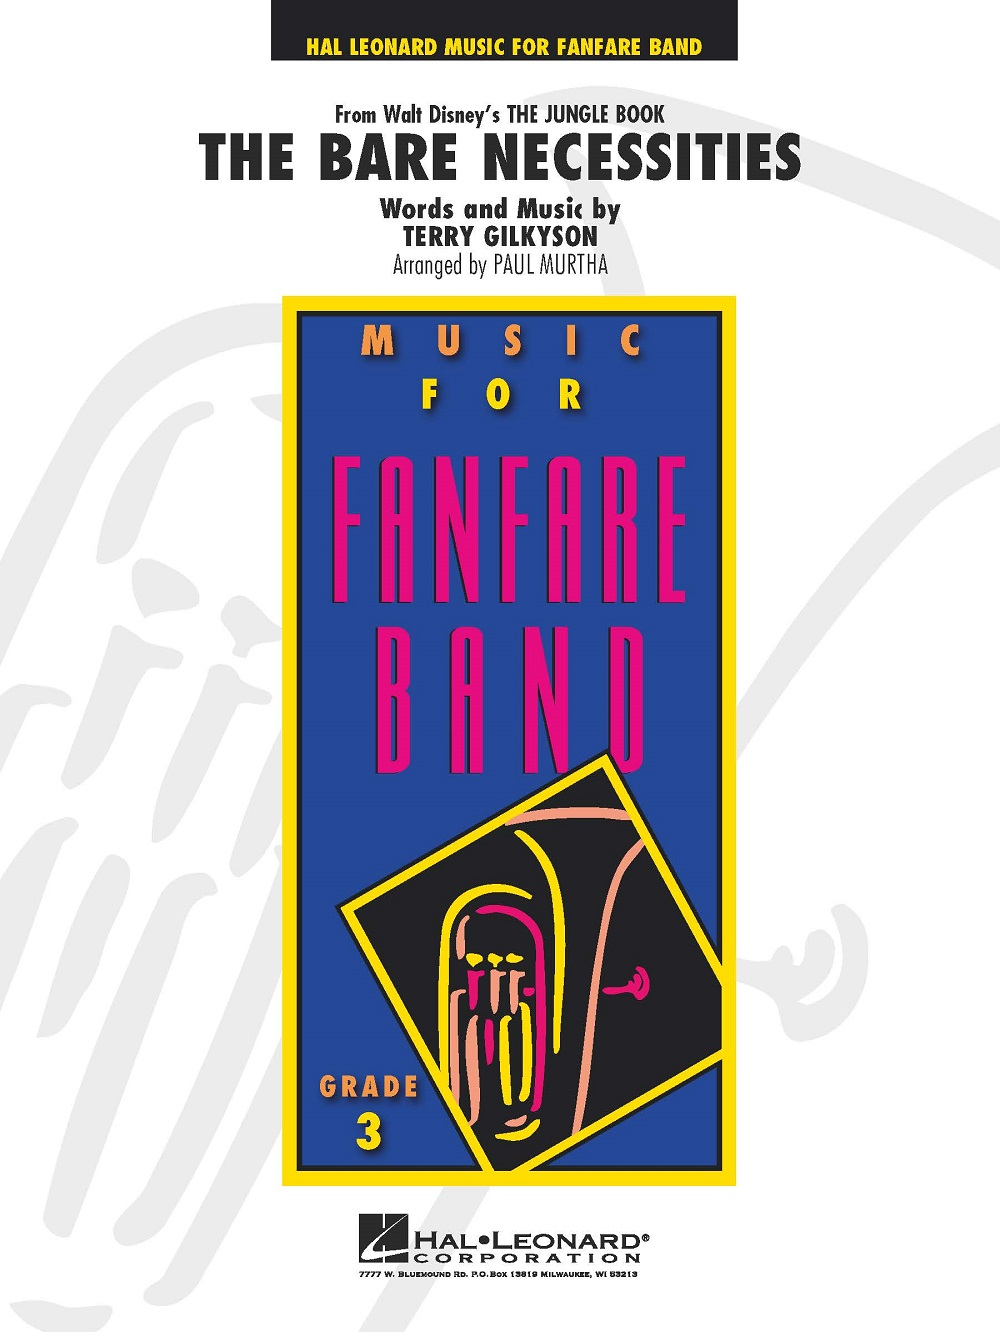 Terry Gilkyson: The Bare Necessities: Fanfare Band: Score and Parts